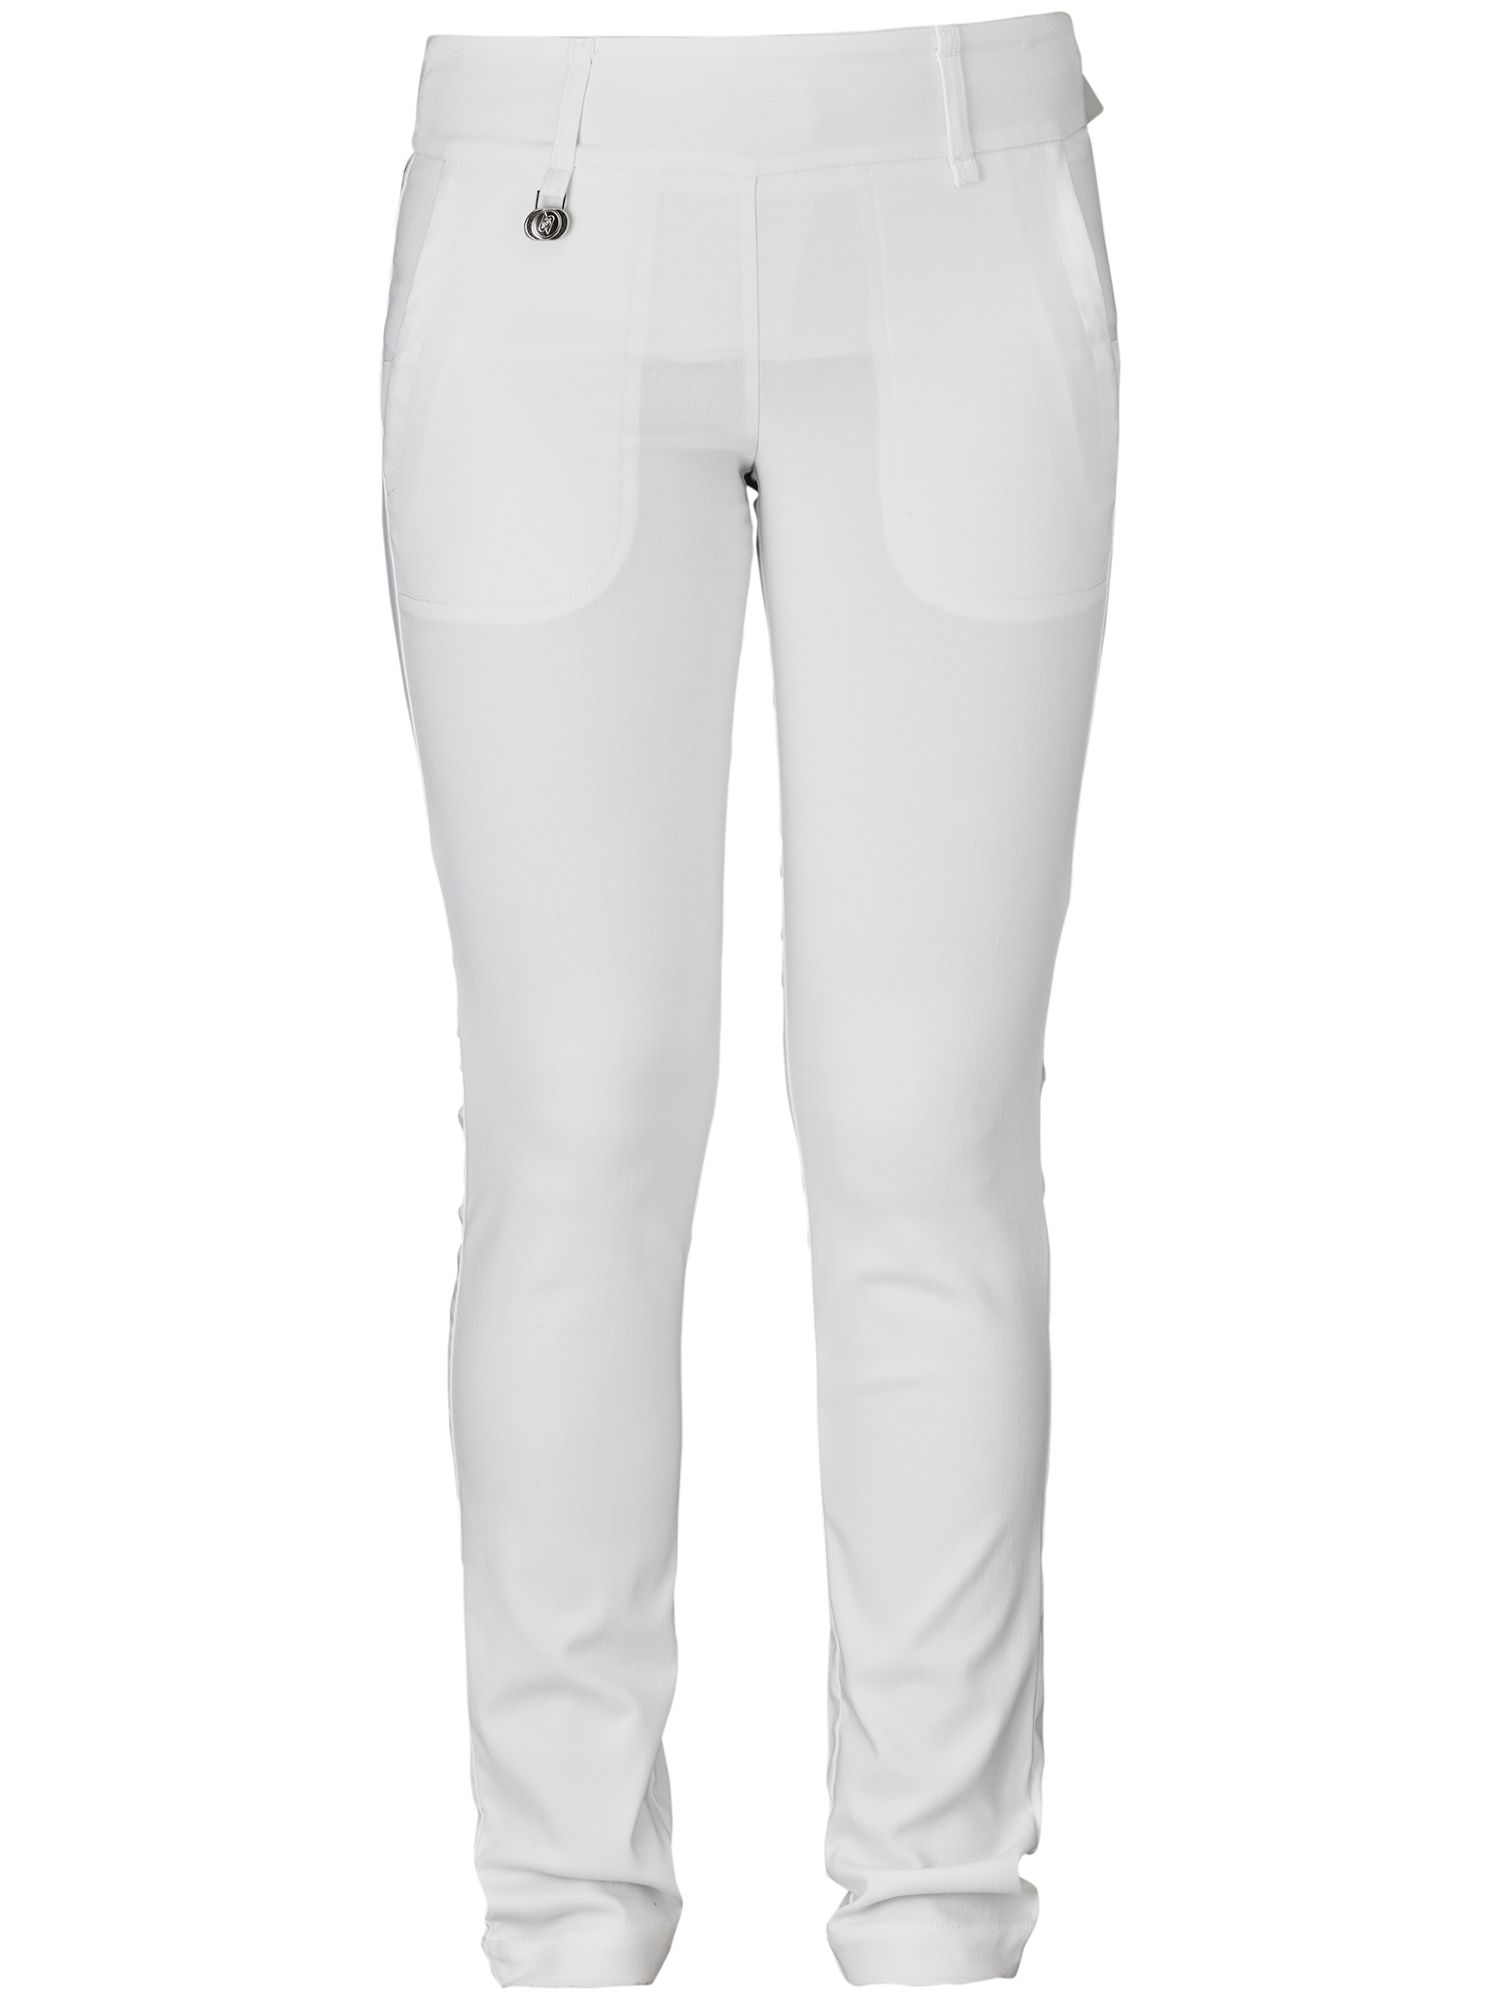 Daily Sports Magic Trousers, White